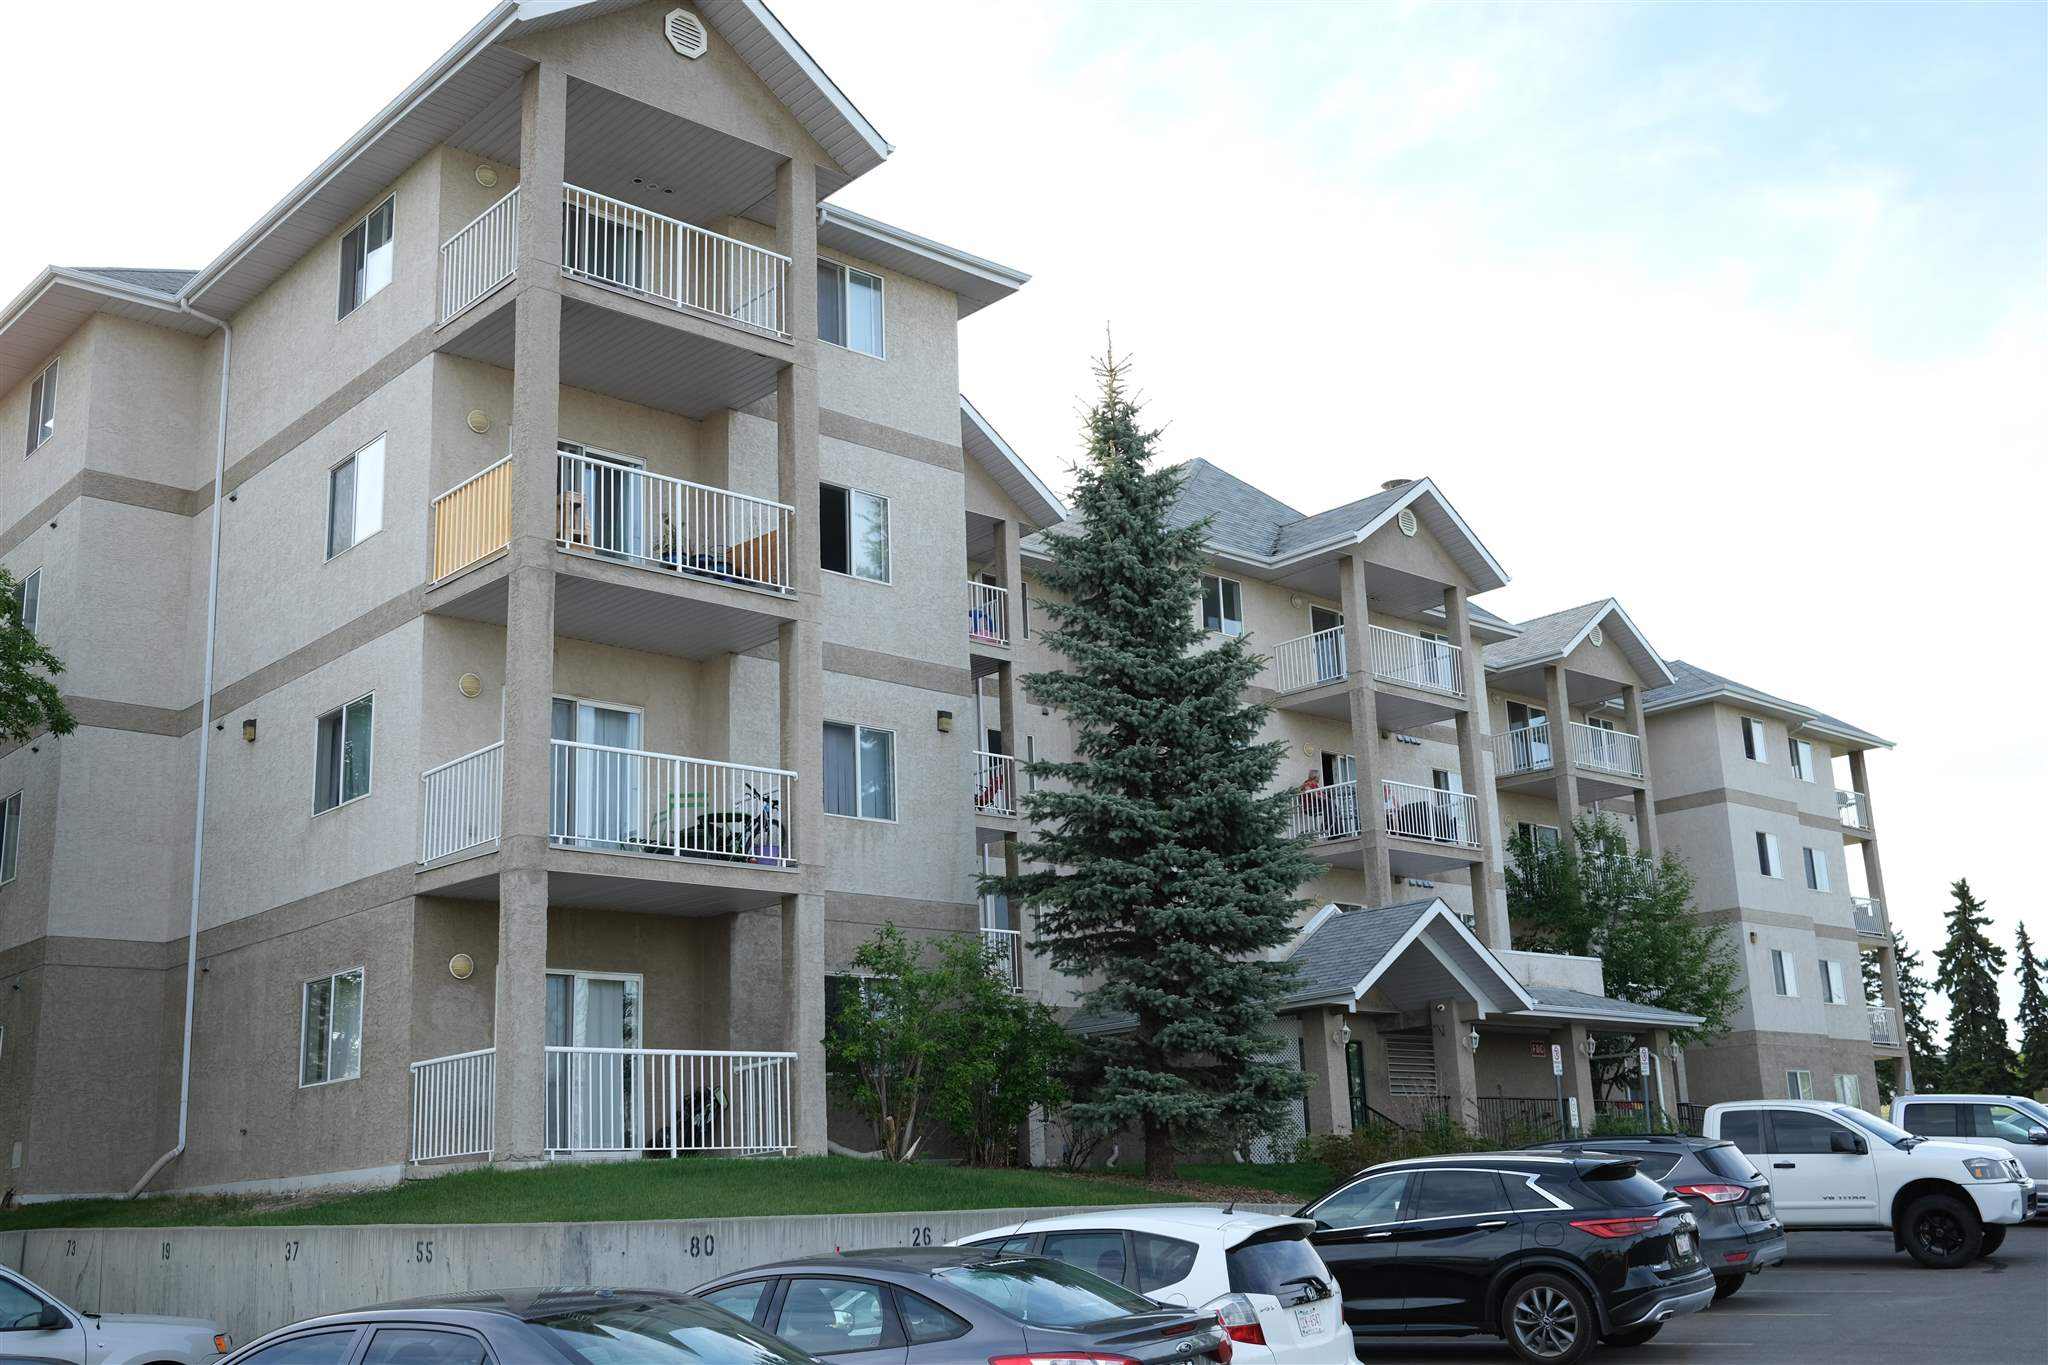 Super bright, clean and very well maintained 1 bedroom 1 bathroom condo located on the 2nd floor in Park Place Manning. The open concept plan has a functional kitchen with a raised eating bar and is open to the living room which has sliding doors to the west facing balcony. The Bedroom has two closets one with mirrored doors. This unit comes with 5 appliances, insuite laundry, + an oversized parking stall that you can see from your balcony. Close to all types of amenities, conveniently located to main travel routes, easy public transportation, schools & much more. Great value for a 1st time property owner or investor.